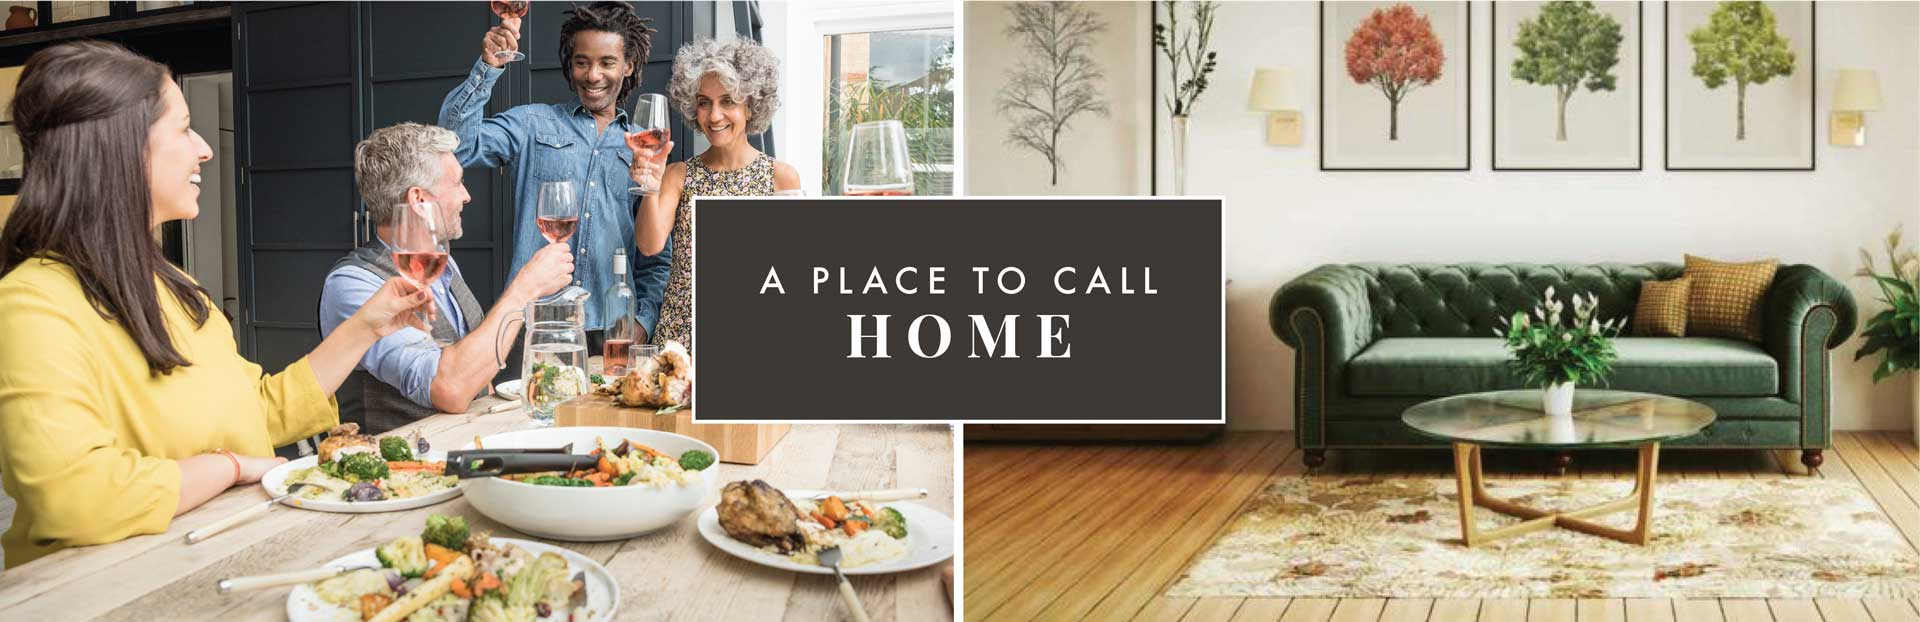 a-place-to-call-home-full-width